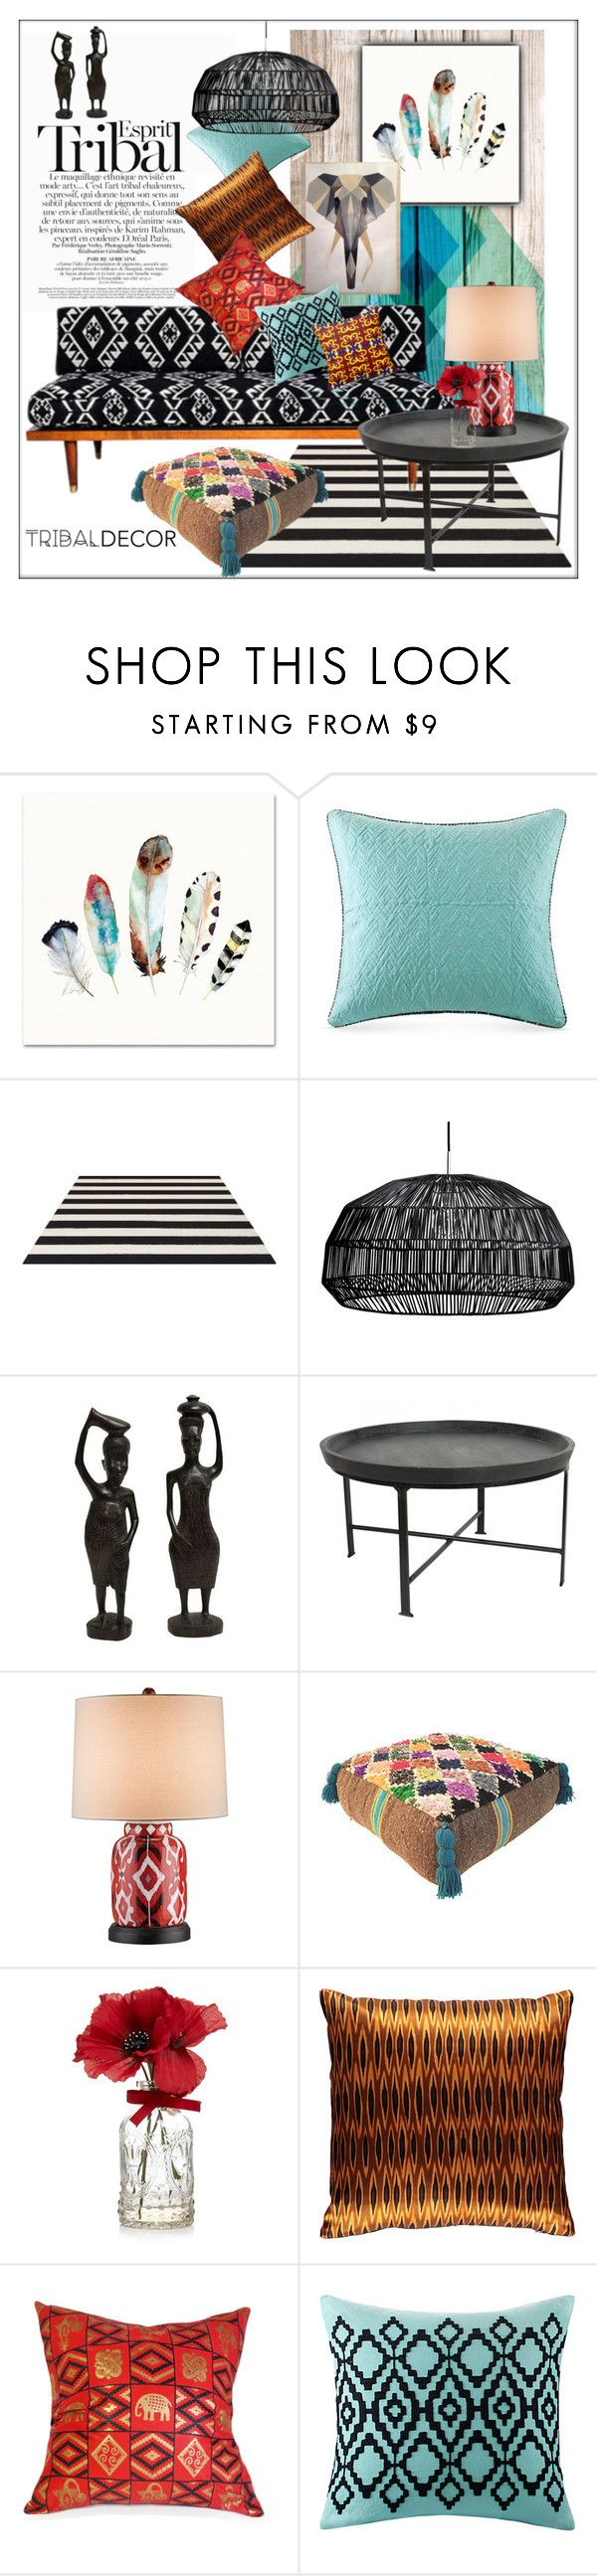 Home decor collage from january 2017 featuring currey company -  Tribal Decor By Frenchfriesblackmg On Polyvore Featuring Interior Interiors Interior Design